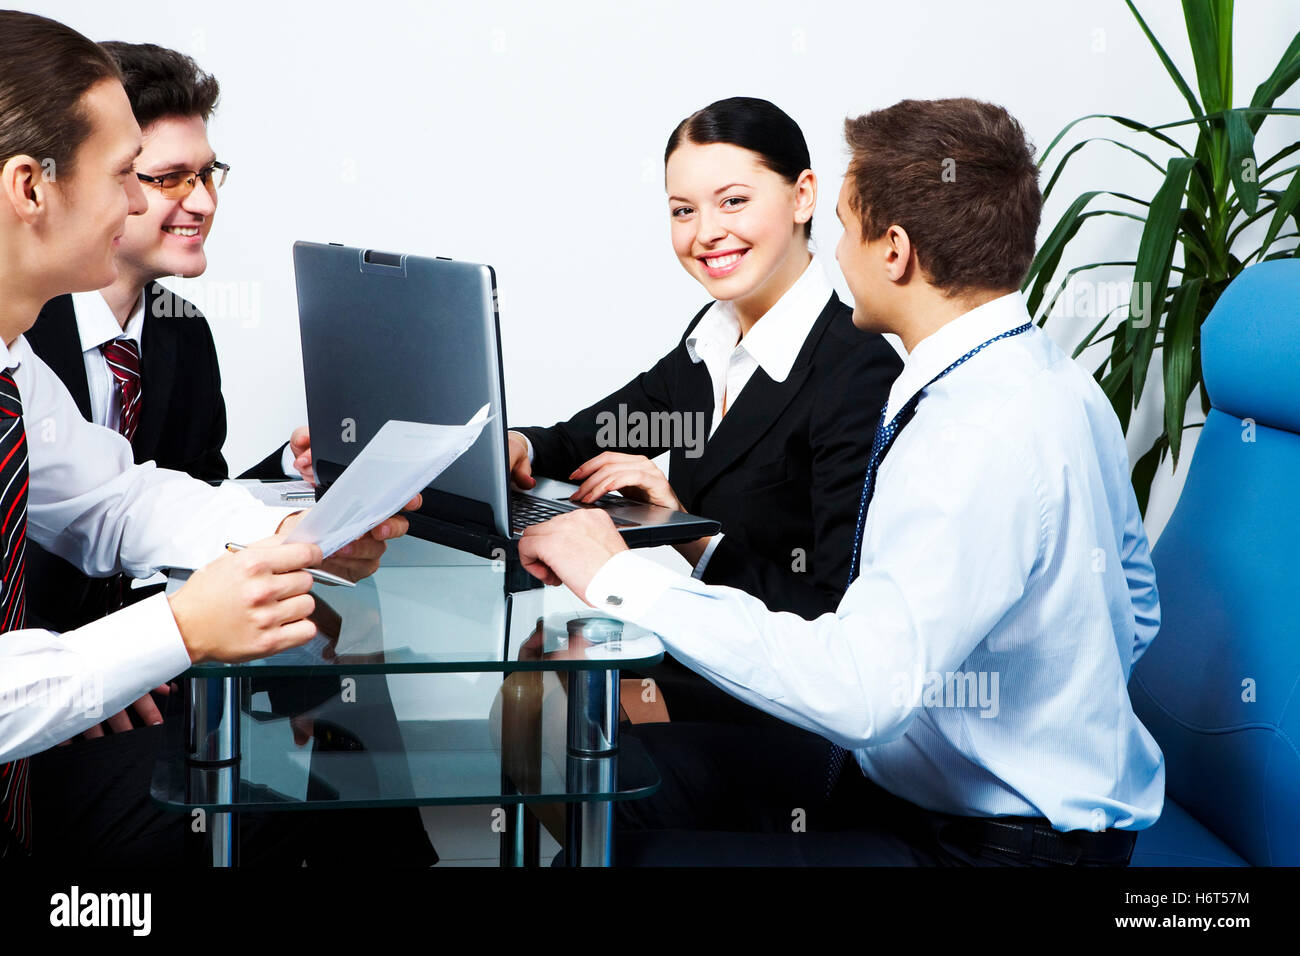 woman humans human beings people folk persons human human being some several a few laptop notebook computers computer - Stock Image